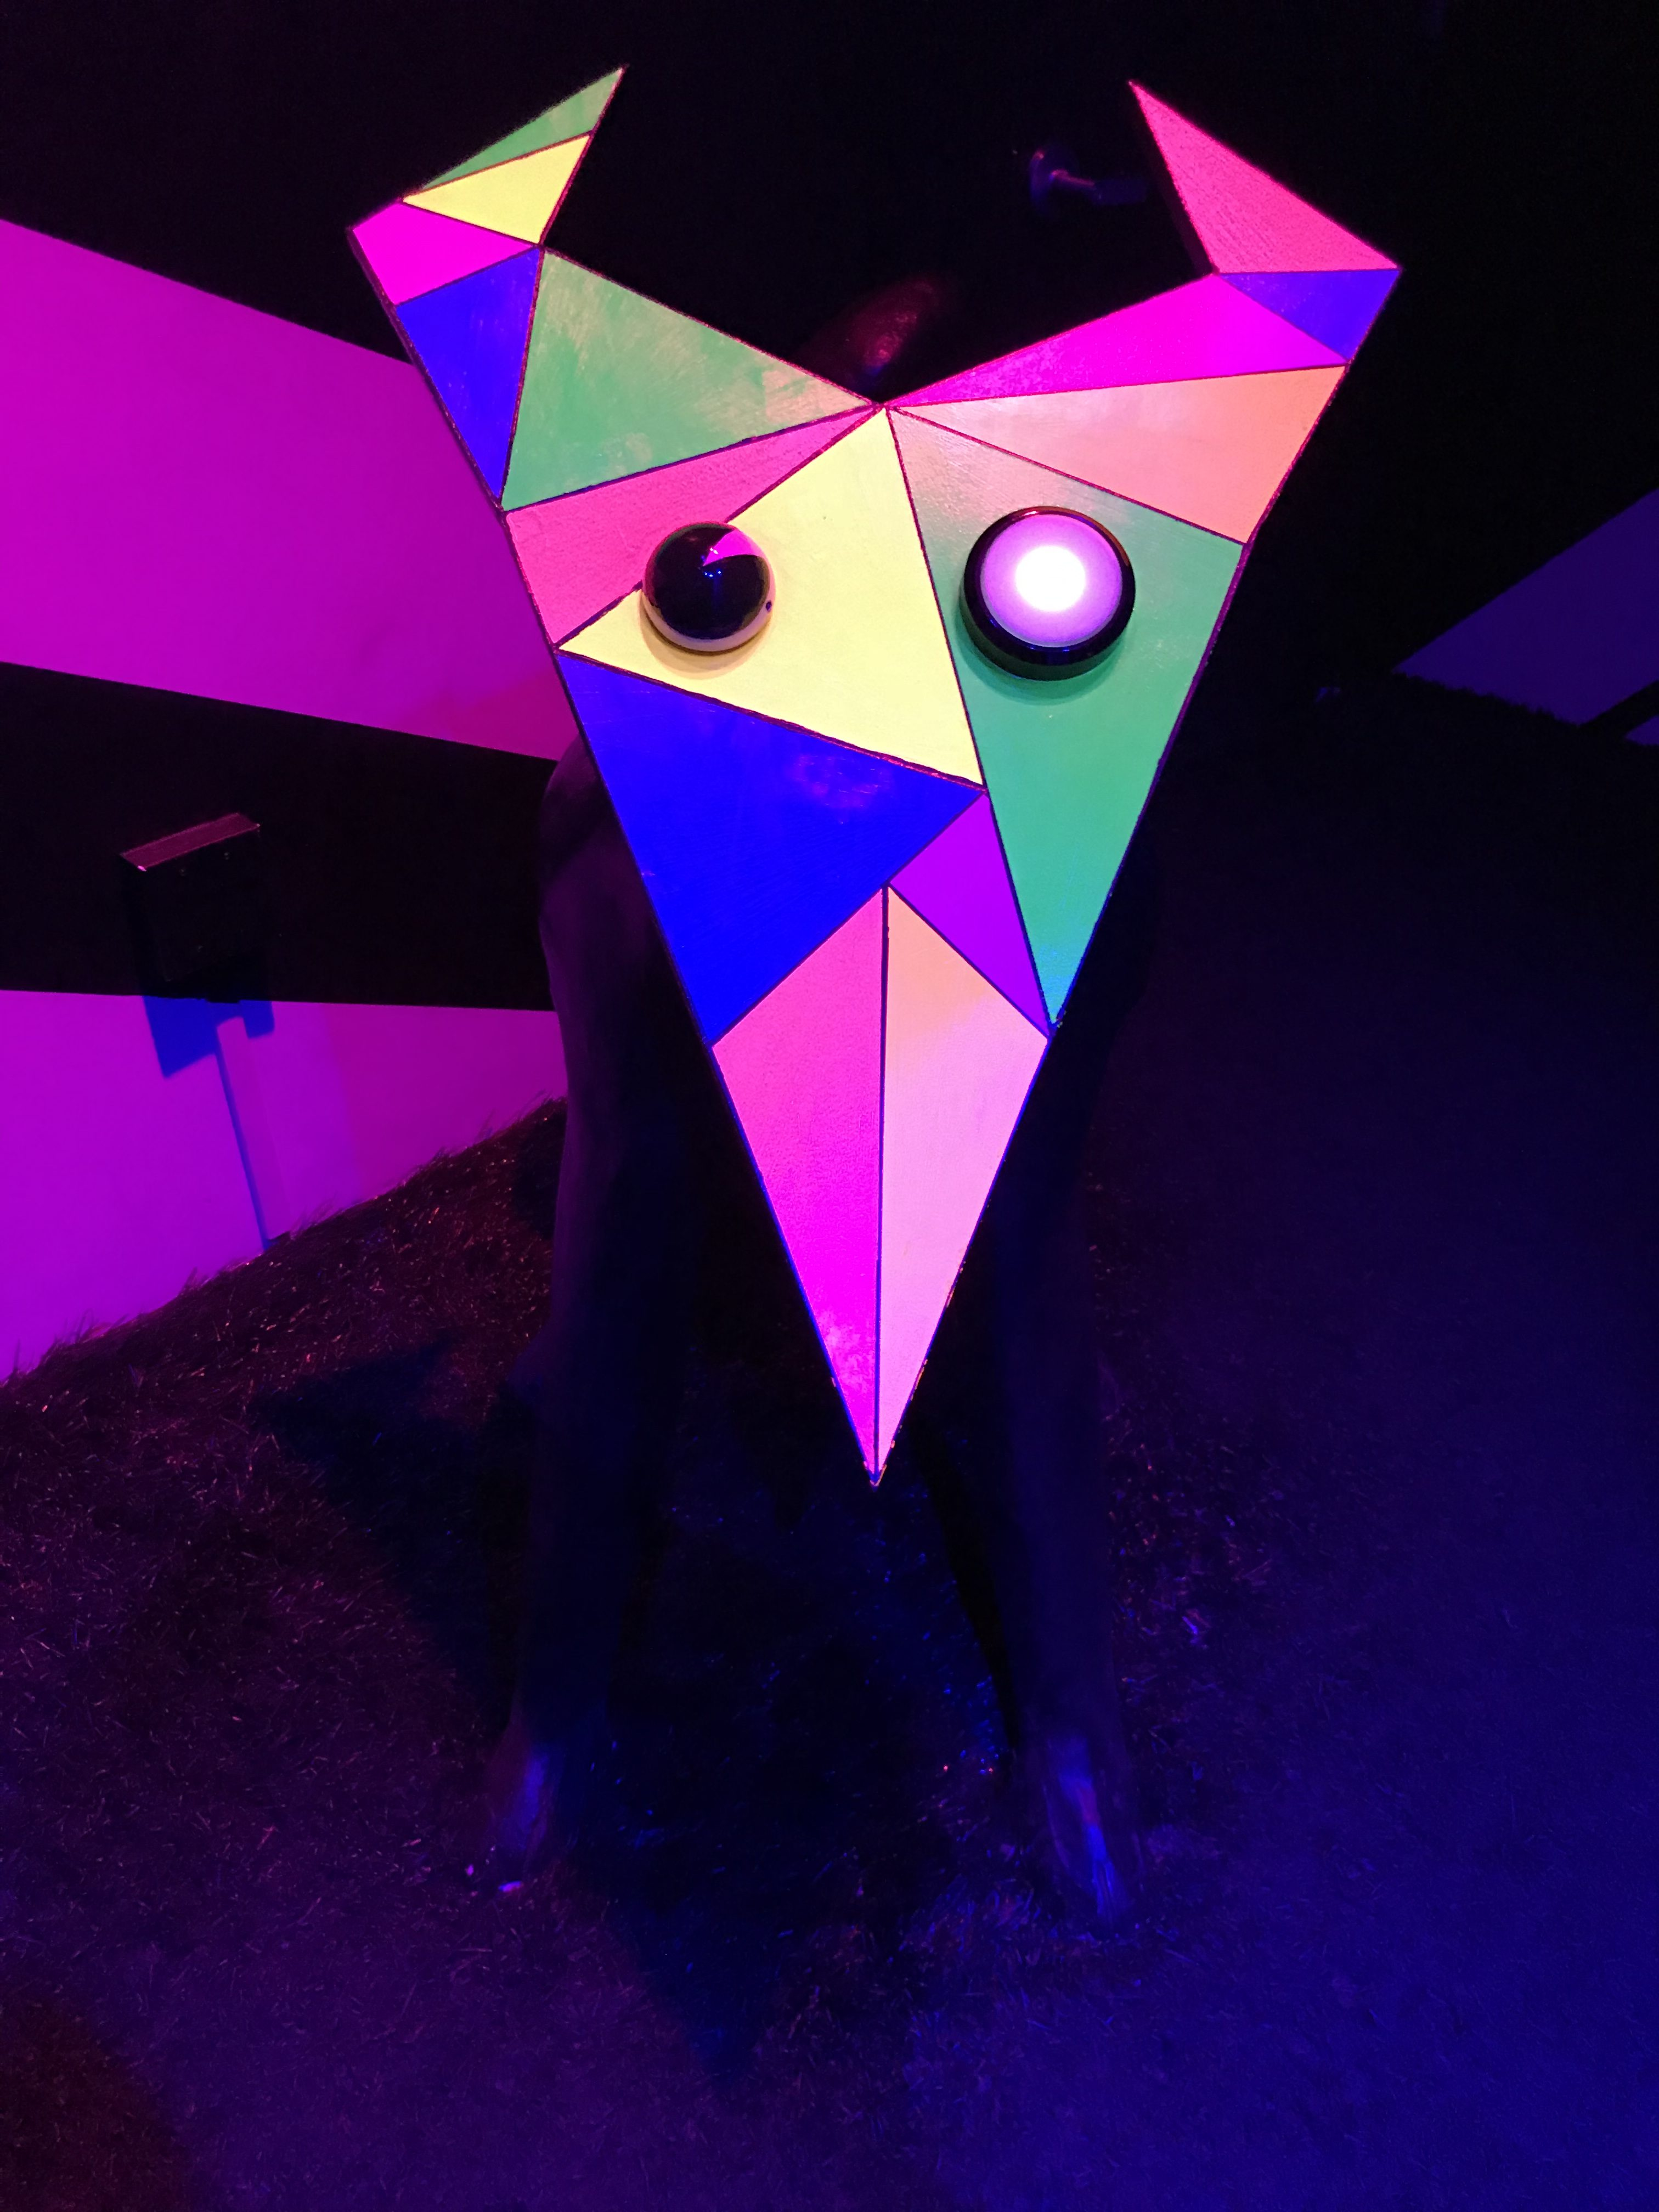 sculpture from Meow Wolf - doglike creature with triangular face and prismatic rainbow coloration